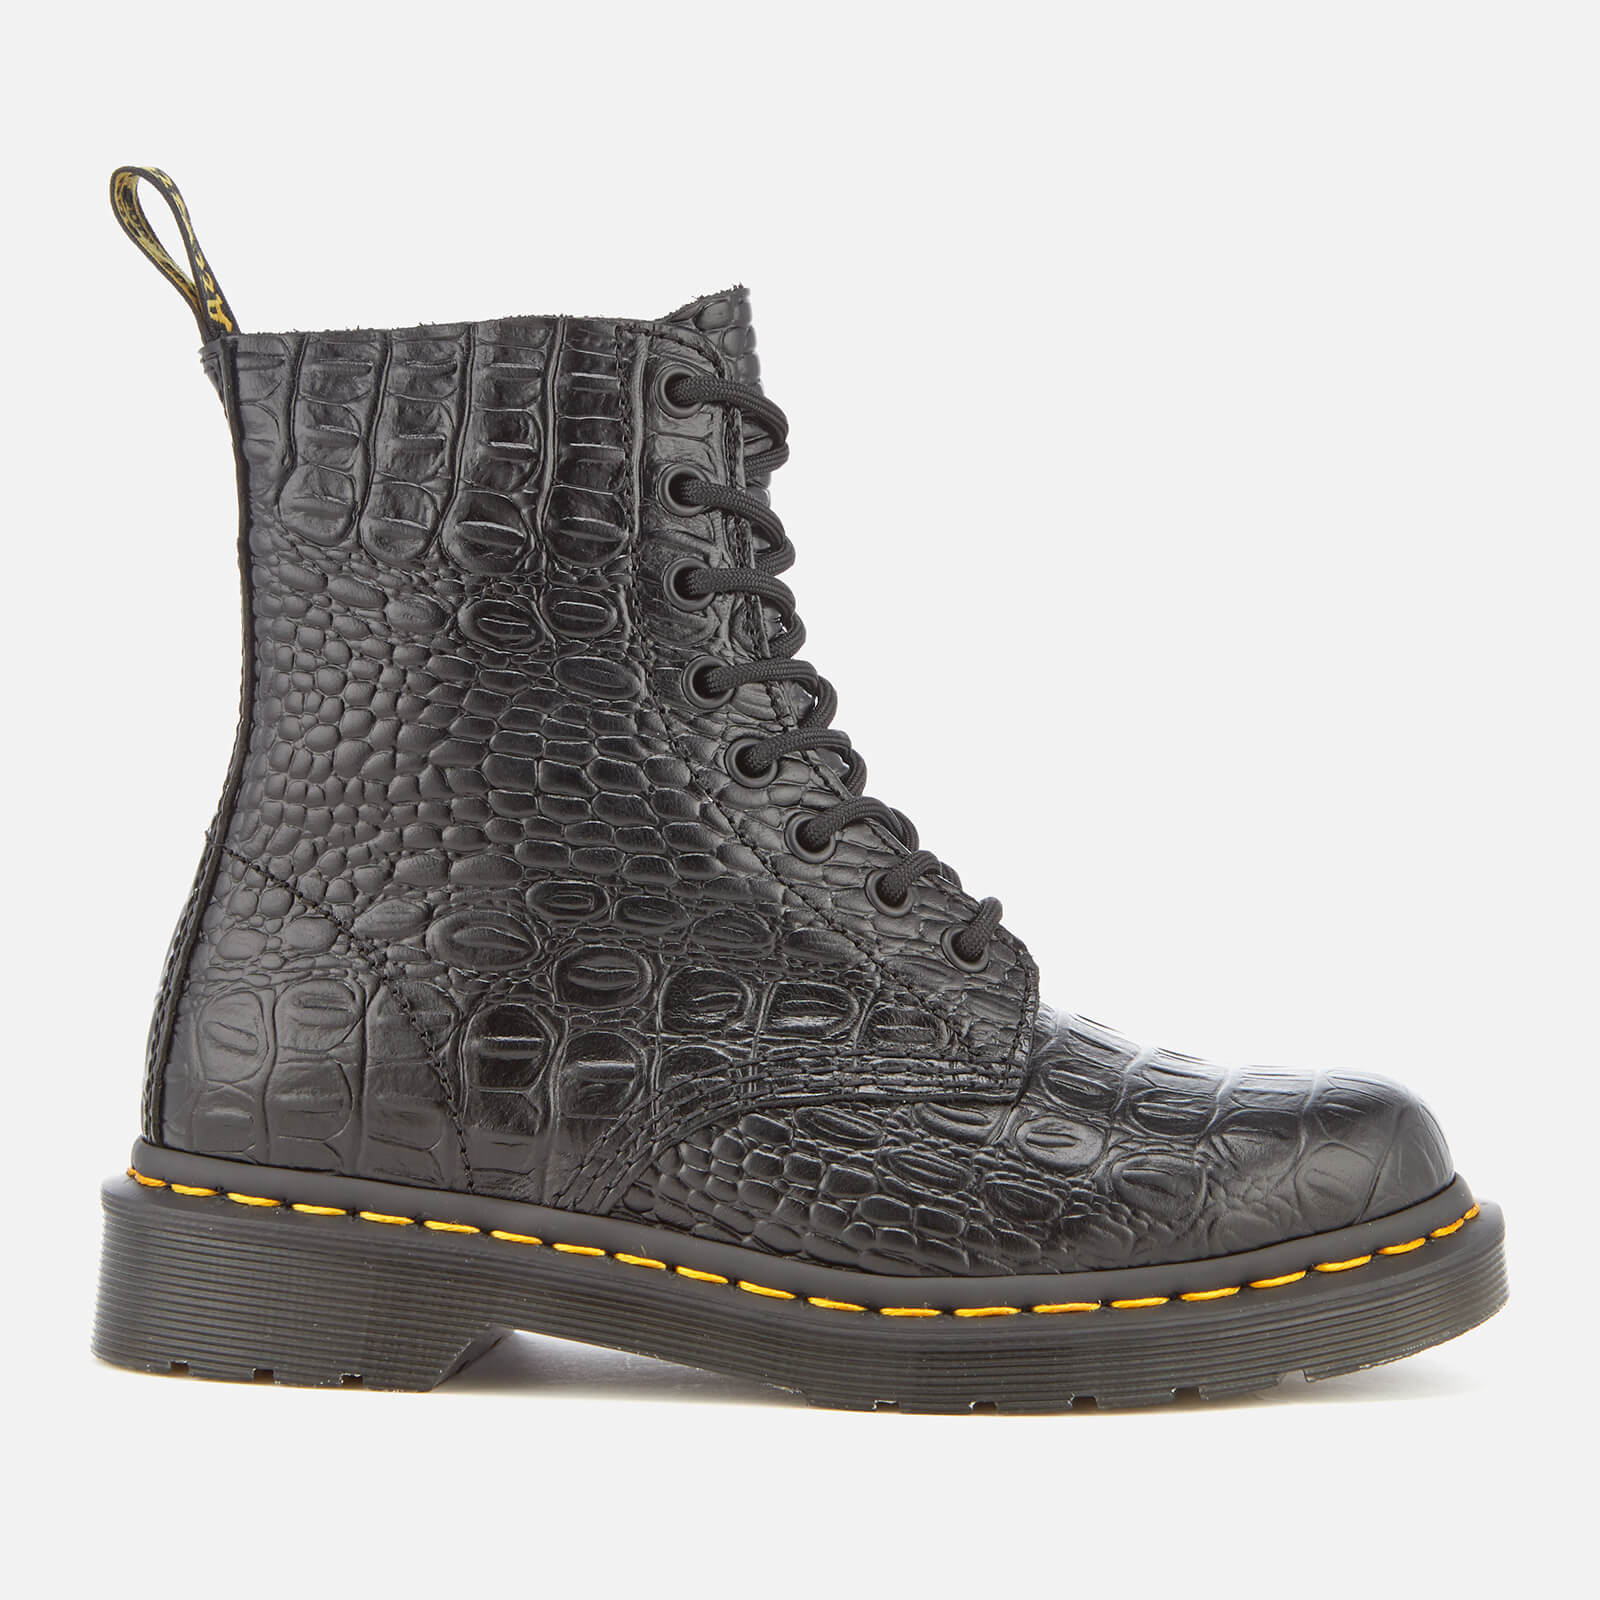 e05933c8e8bbeb Dr. Martens Women s Pascal Croc Leather 8-Eye Lace Up Boots - Black - Free  UK Delivery over £50